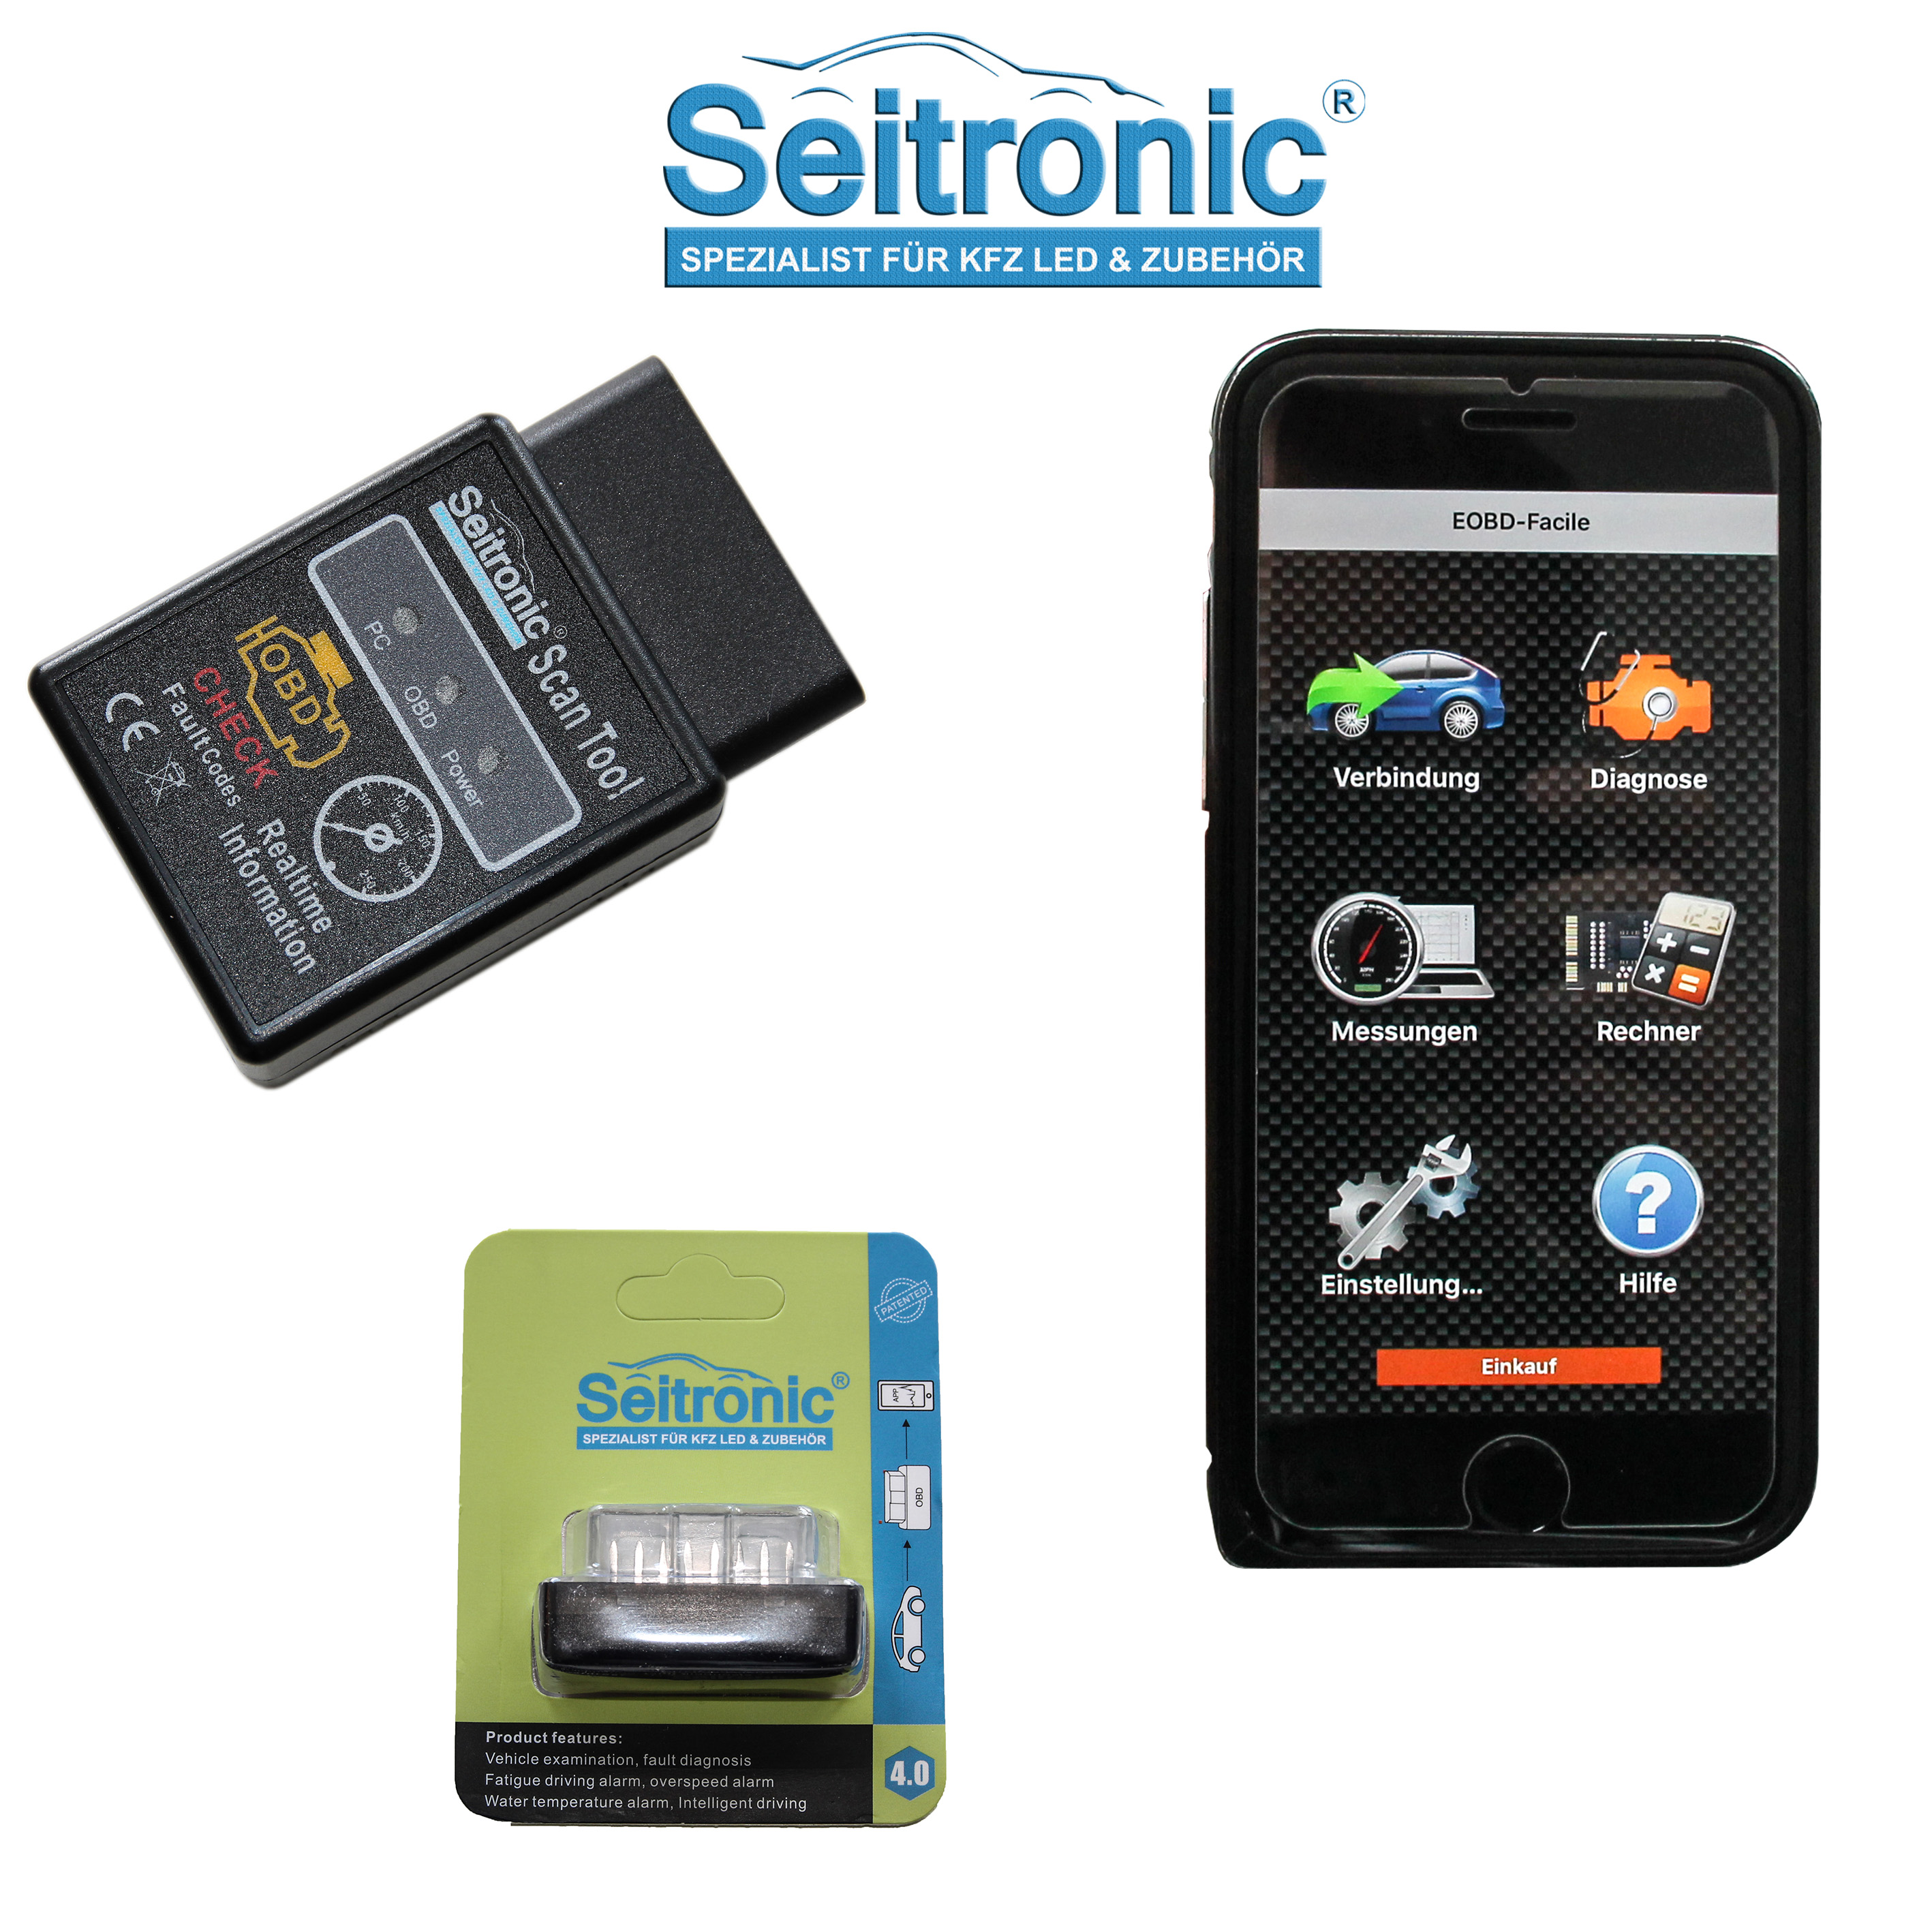 seitronic obd2 kfz auto diagnoseger t mit bluetooth f r. Black Bedroom Furniture Sets. Home Design Ideas